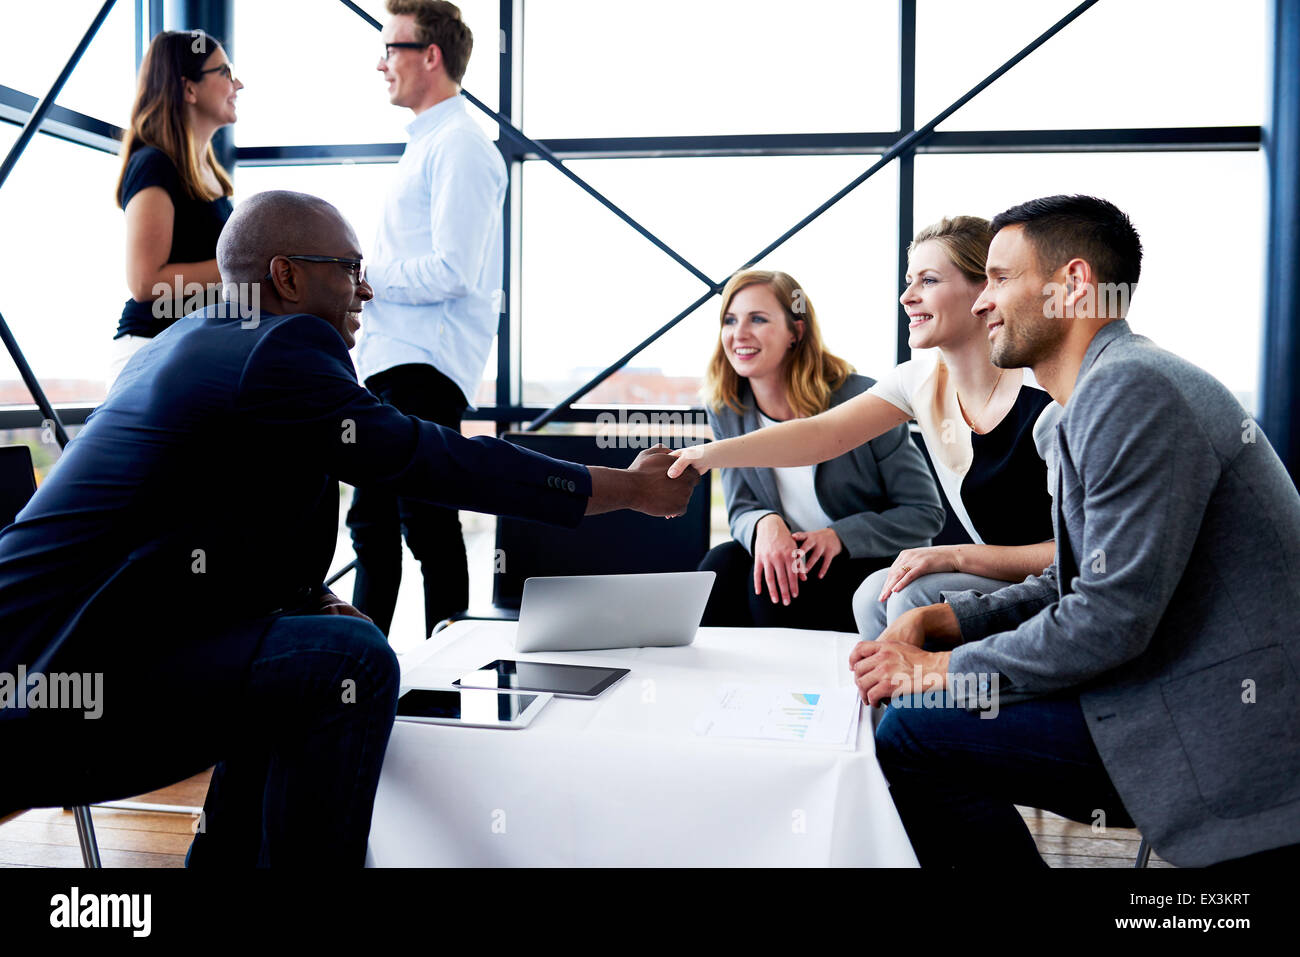 Black male executive sitting and shaking hands with white female colleague - Stock Image